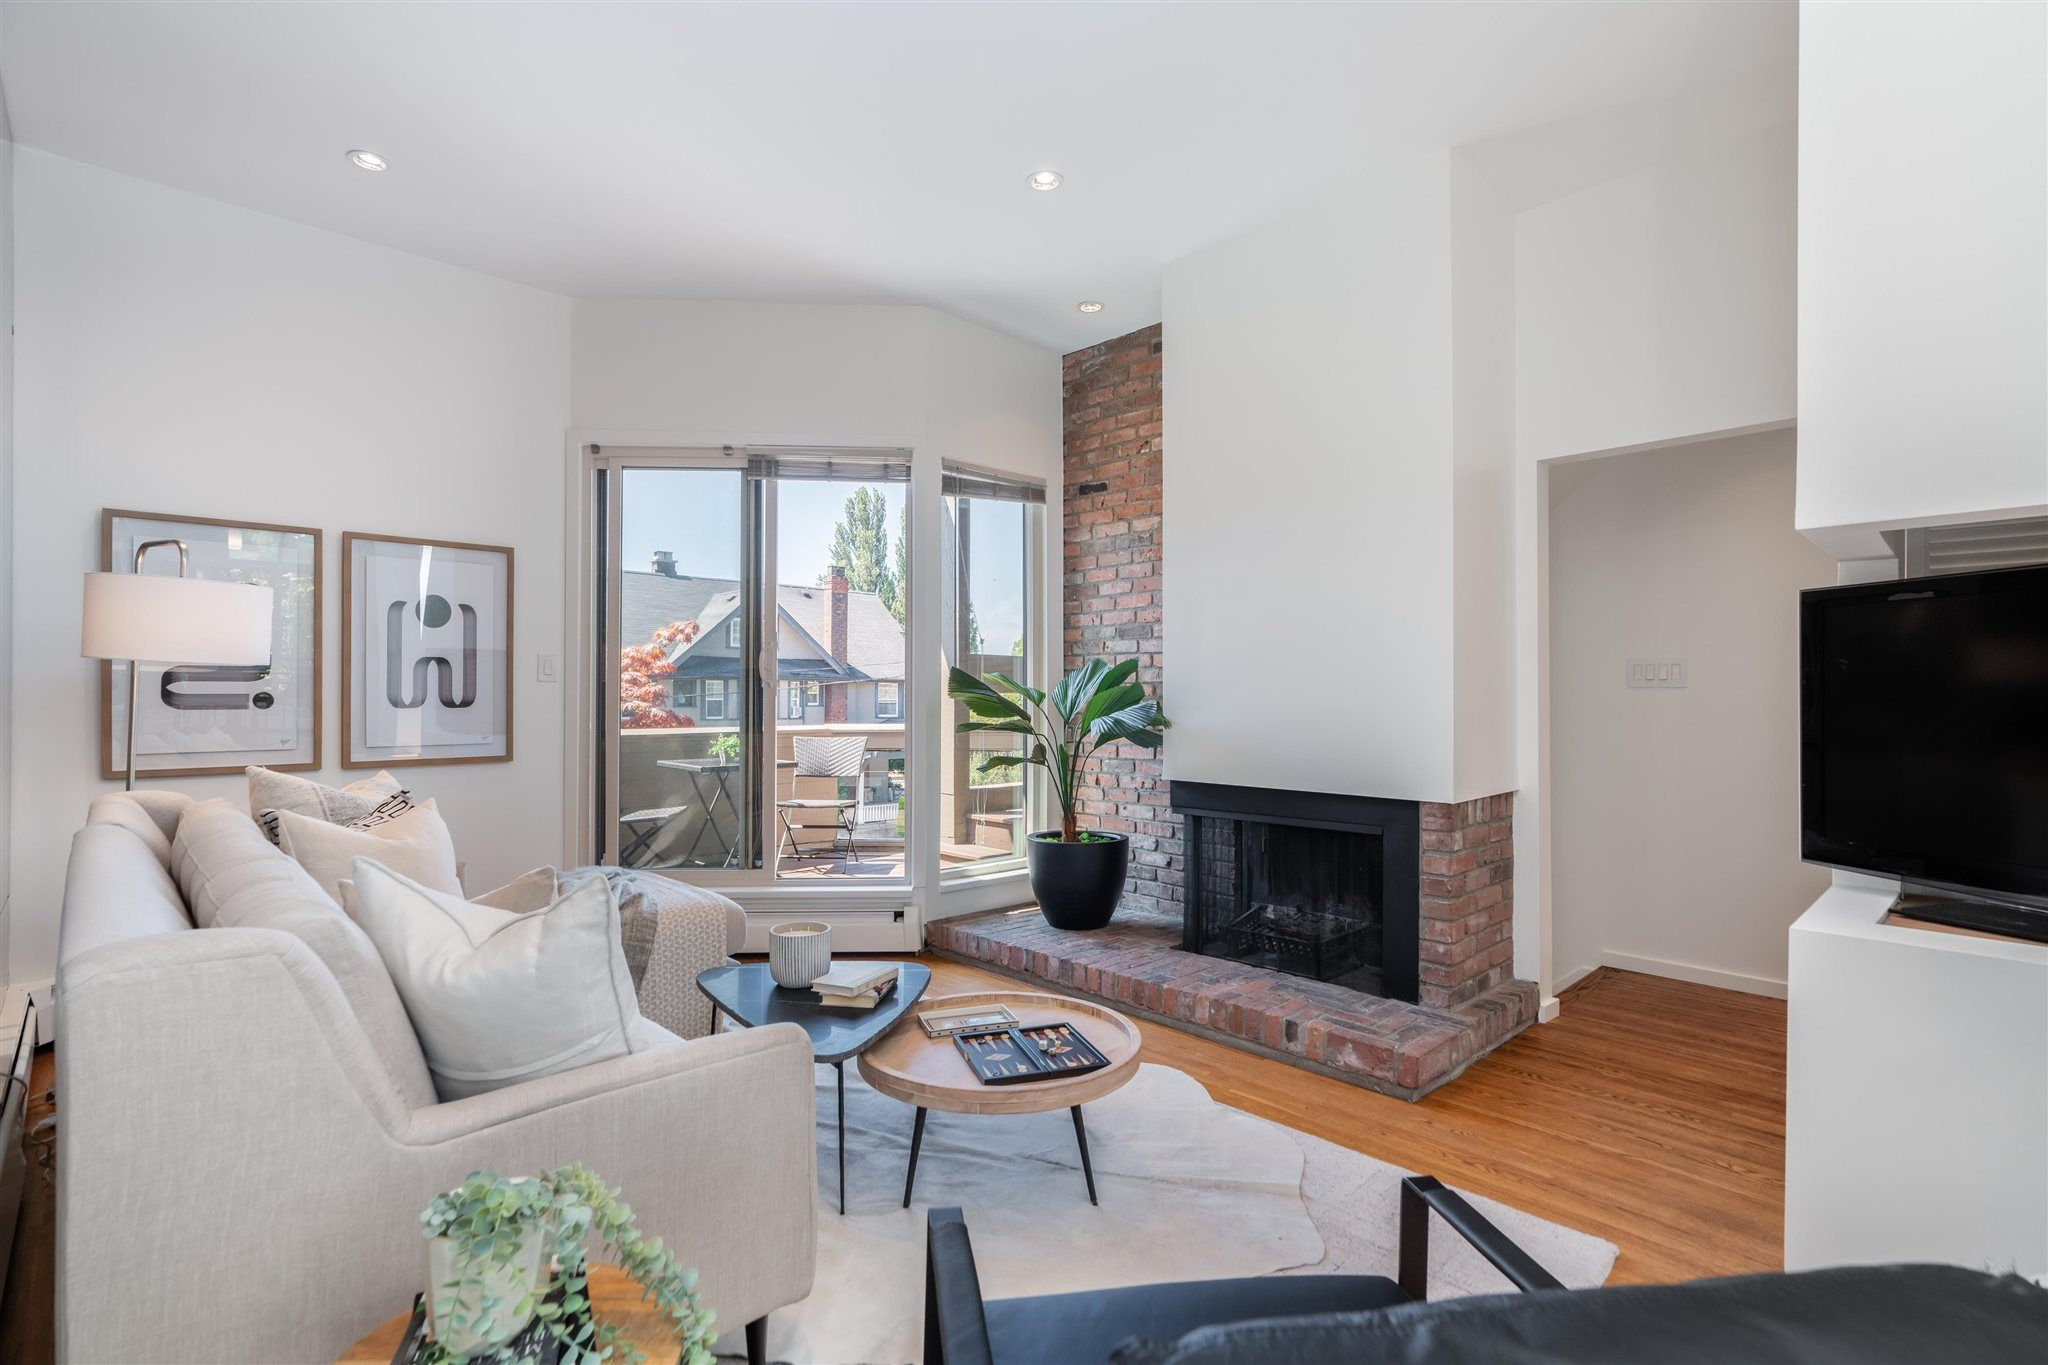 """Main Photo: 1718 MACDONALD Street in Vancouver: Kitsilano Townhouse for sale in """"Cherry West"""" (Vancouver West)  : MLS®# R2602789"""